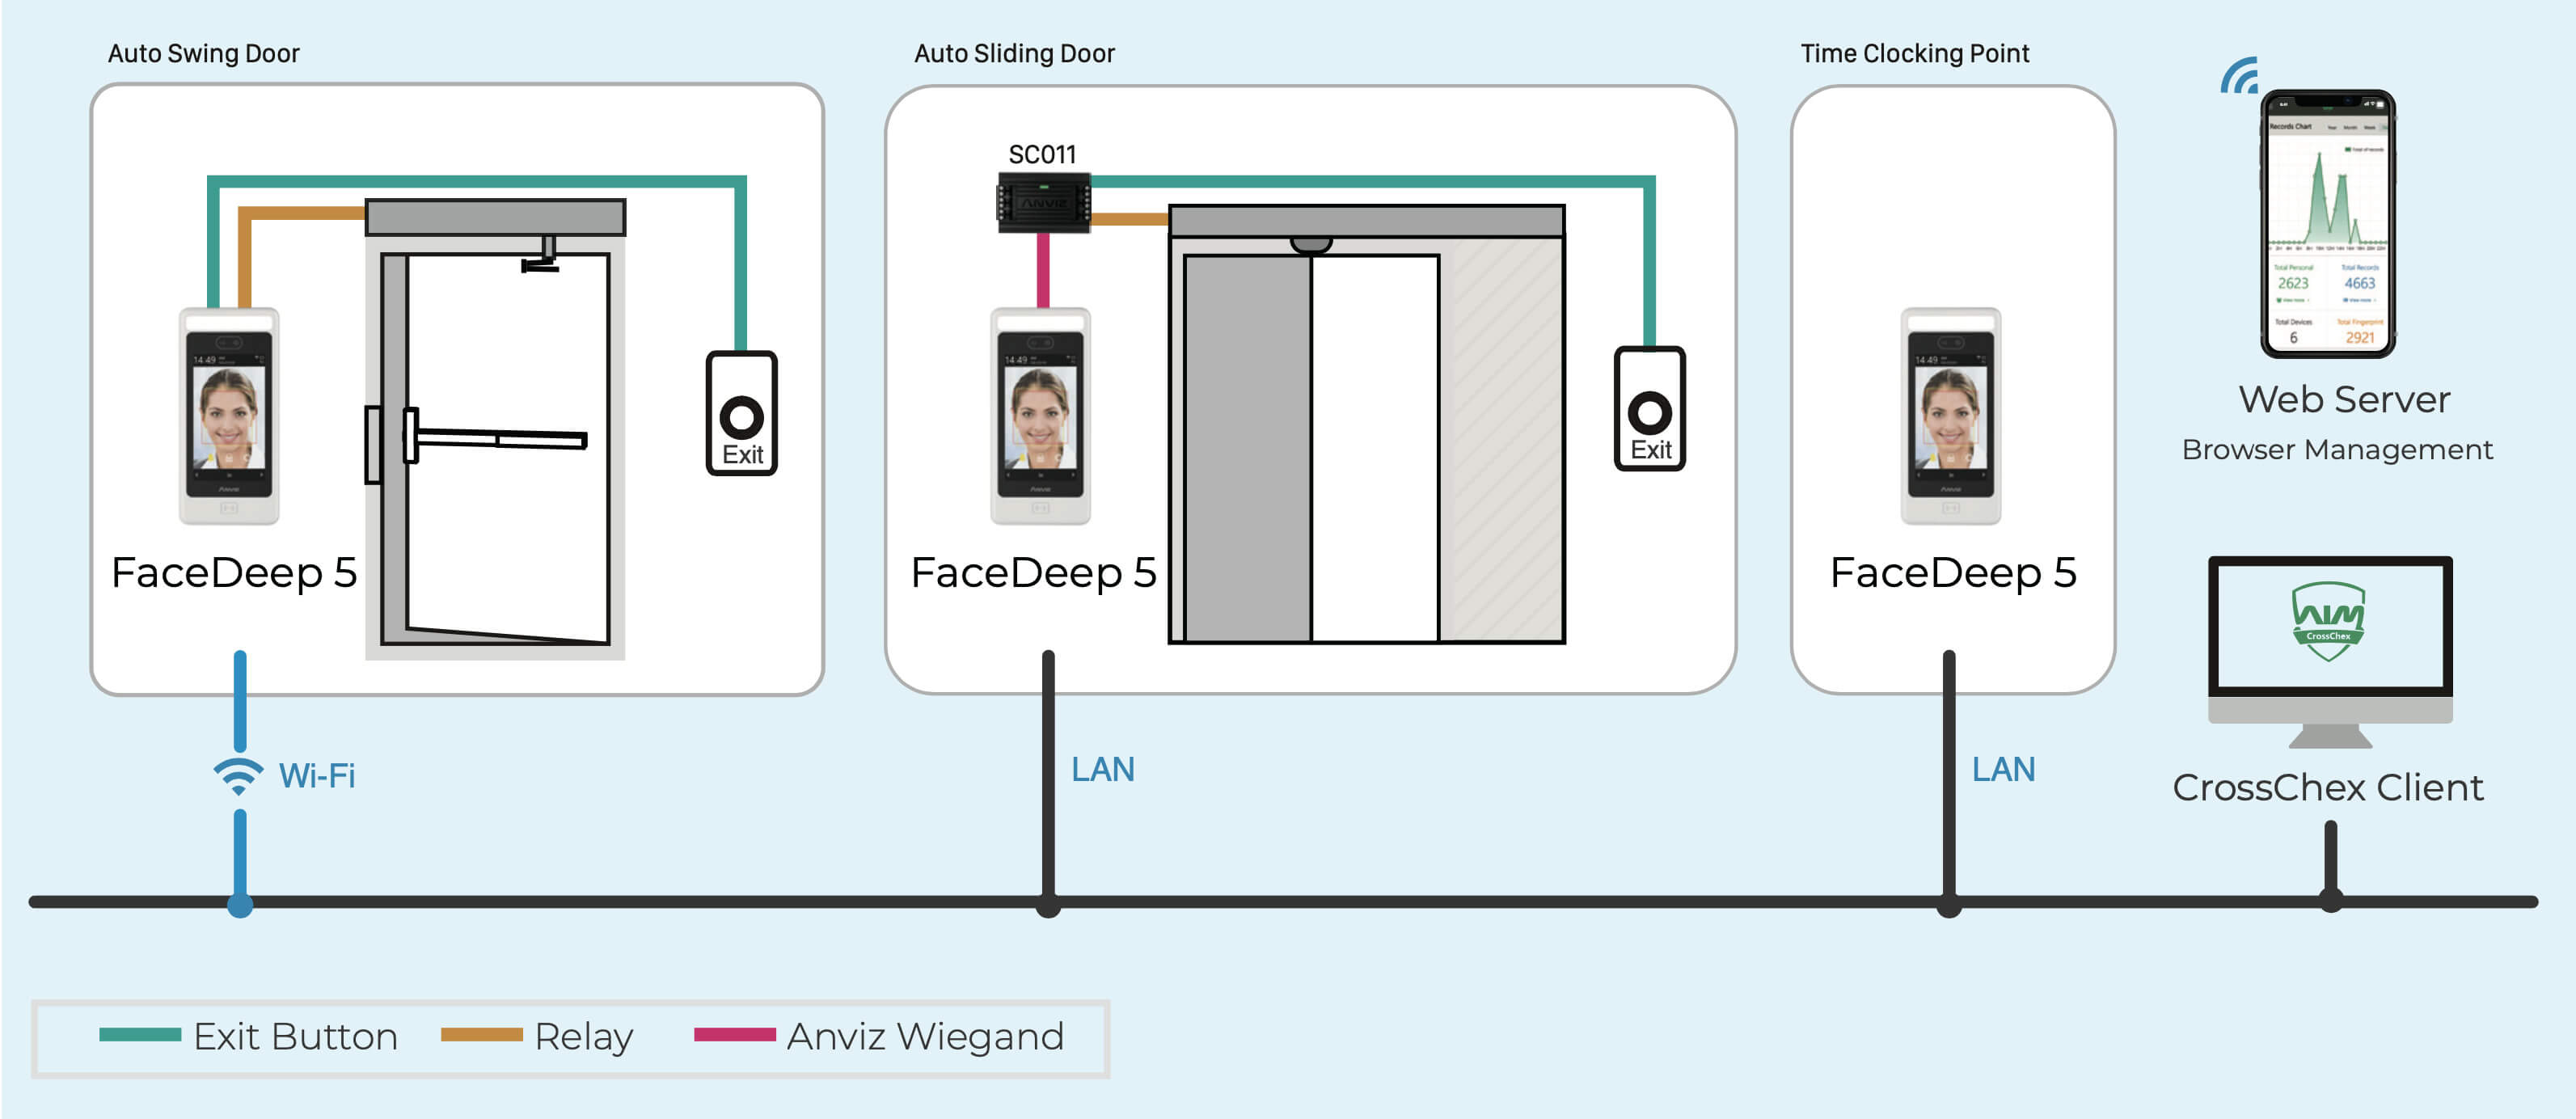 FaceDeep 5 Touchless Access Control Smart Face Recognition Terminal More Convenient than Ever